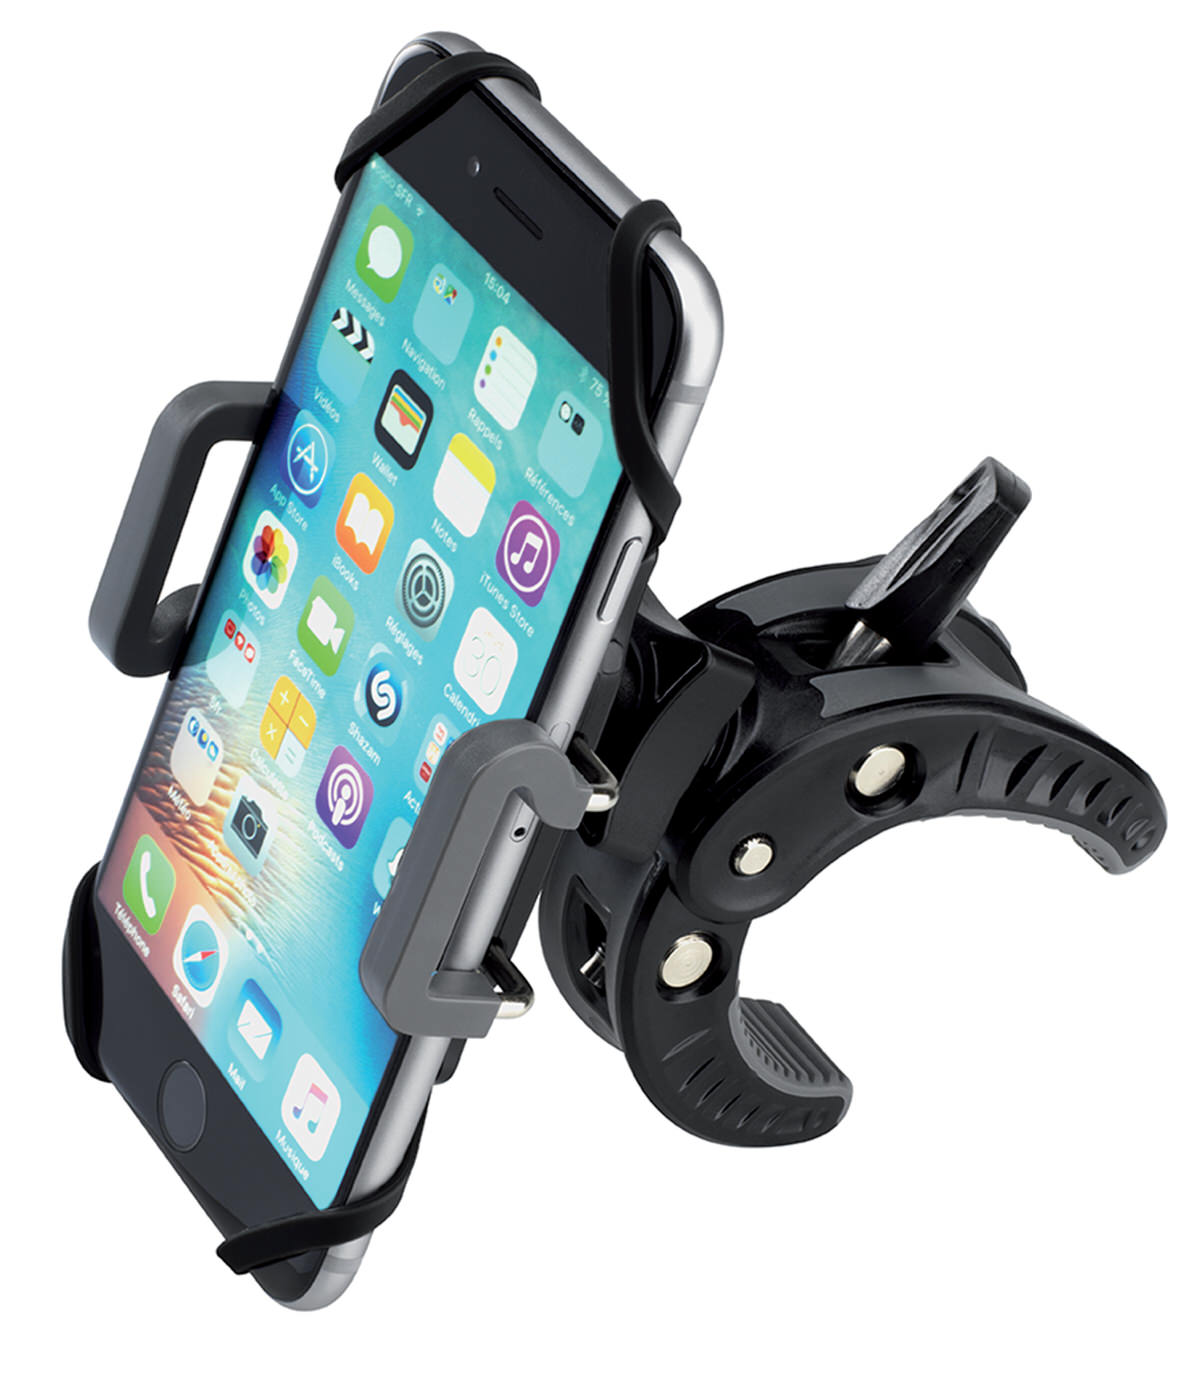 PNY_Expand_Bike_Mount_iPhone